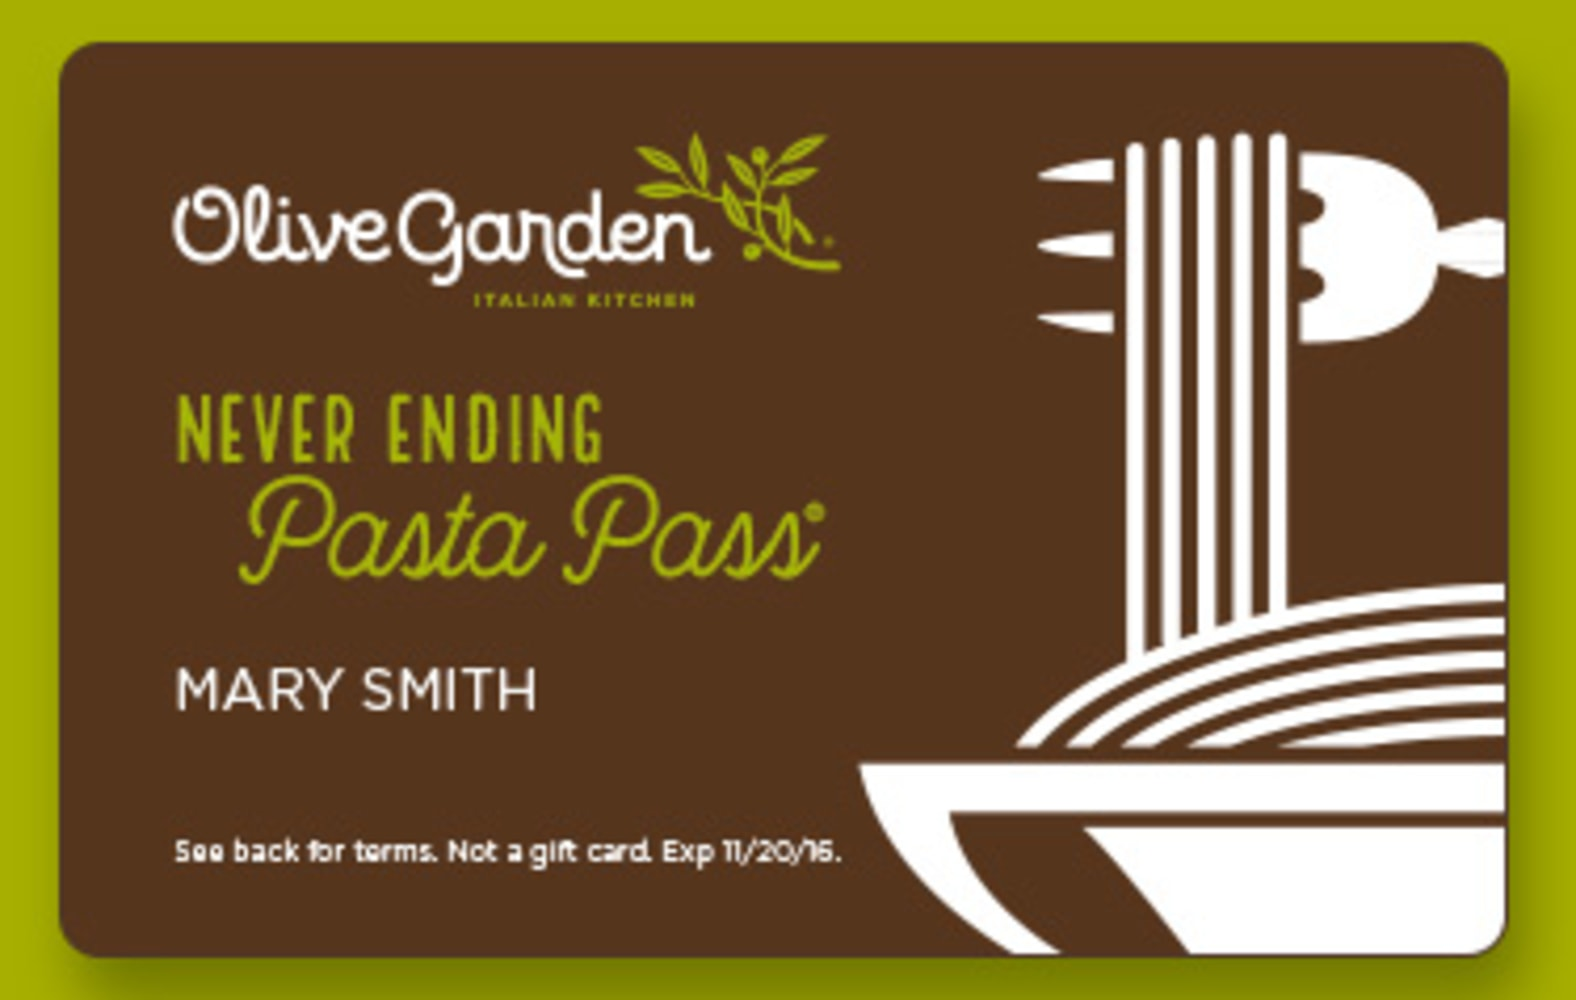 olive garden unlimited pasta pass olive garden s unlimited pasta pass lets you gorge for 100 nbc news